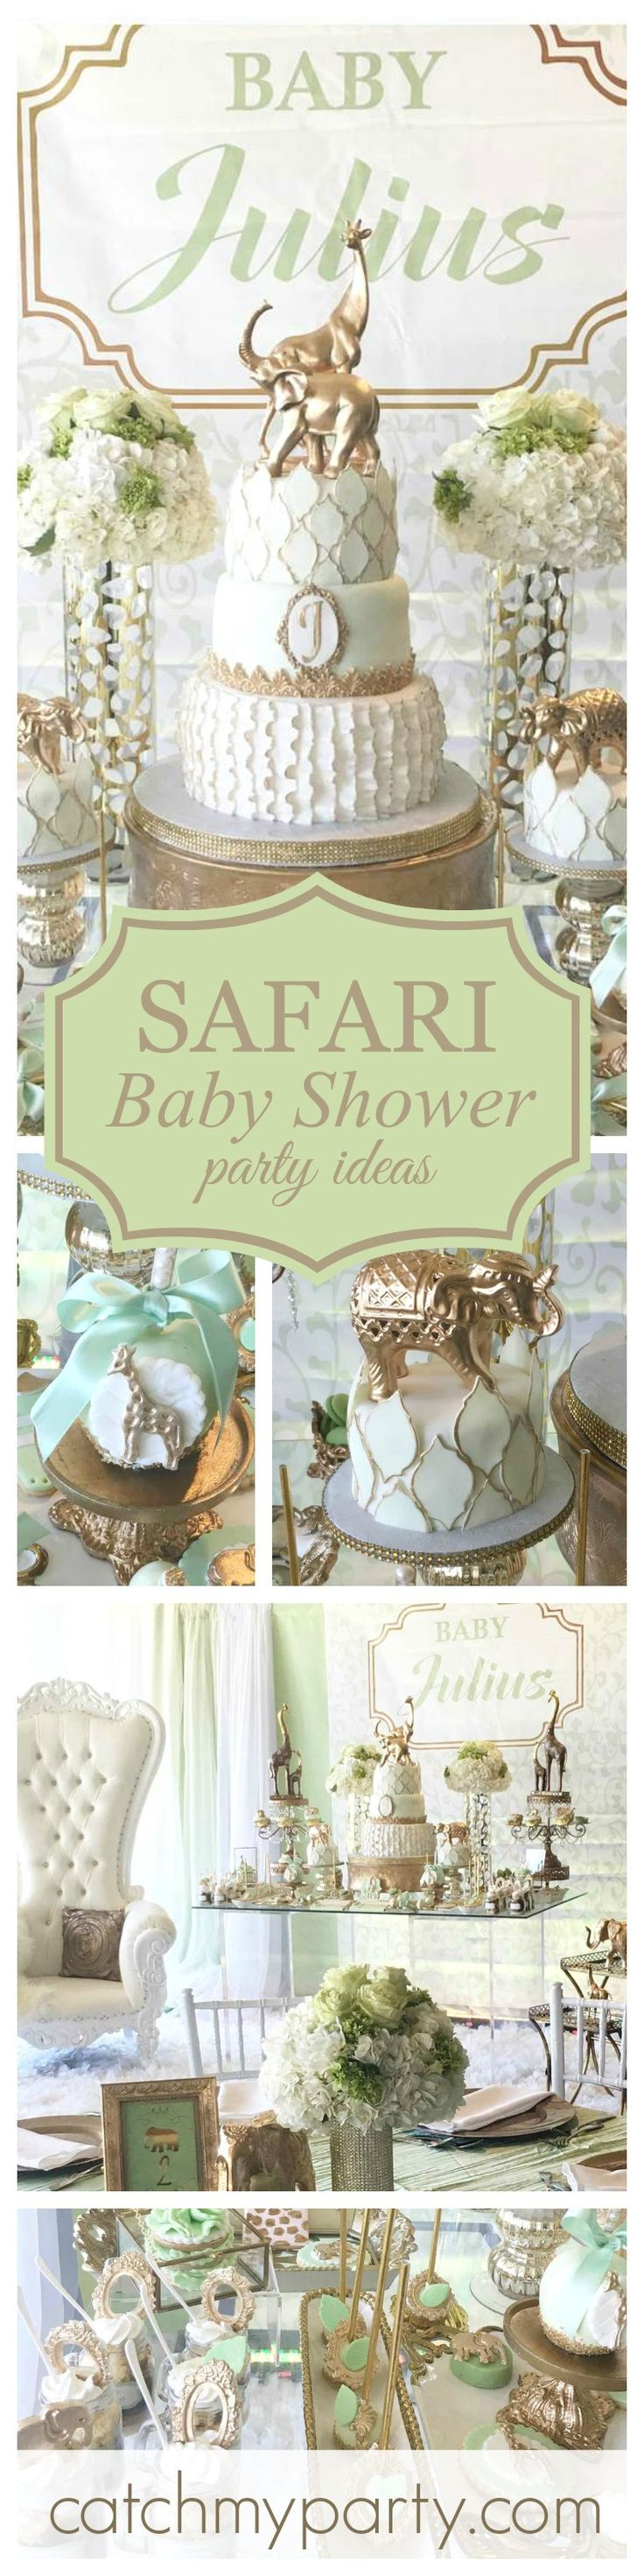 A fabulous Glam Safari baby shower! Just so beautiful! You won't want to miss this cake! The gold animal toppers give it that extra special elegant touch!